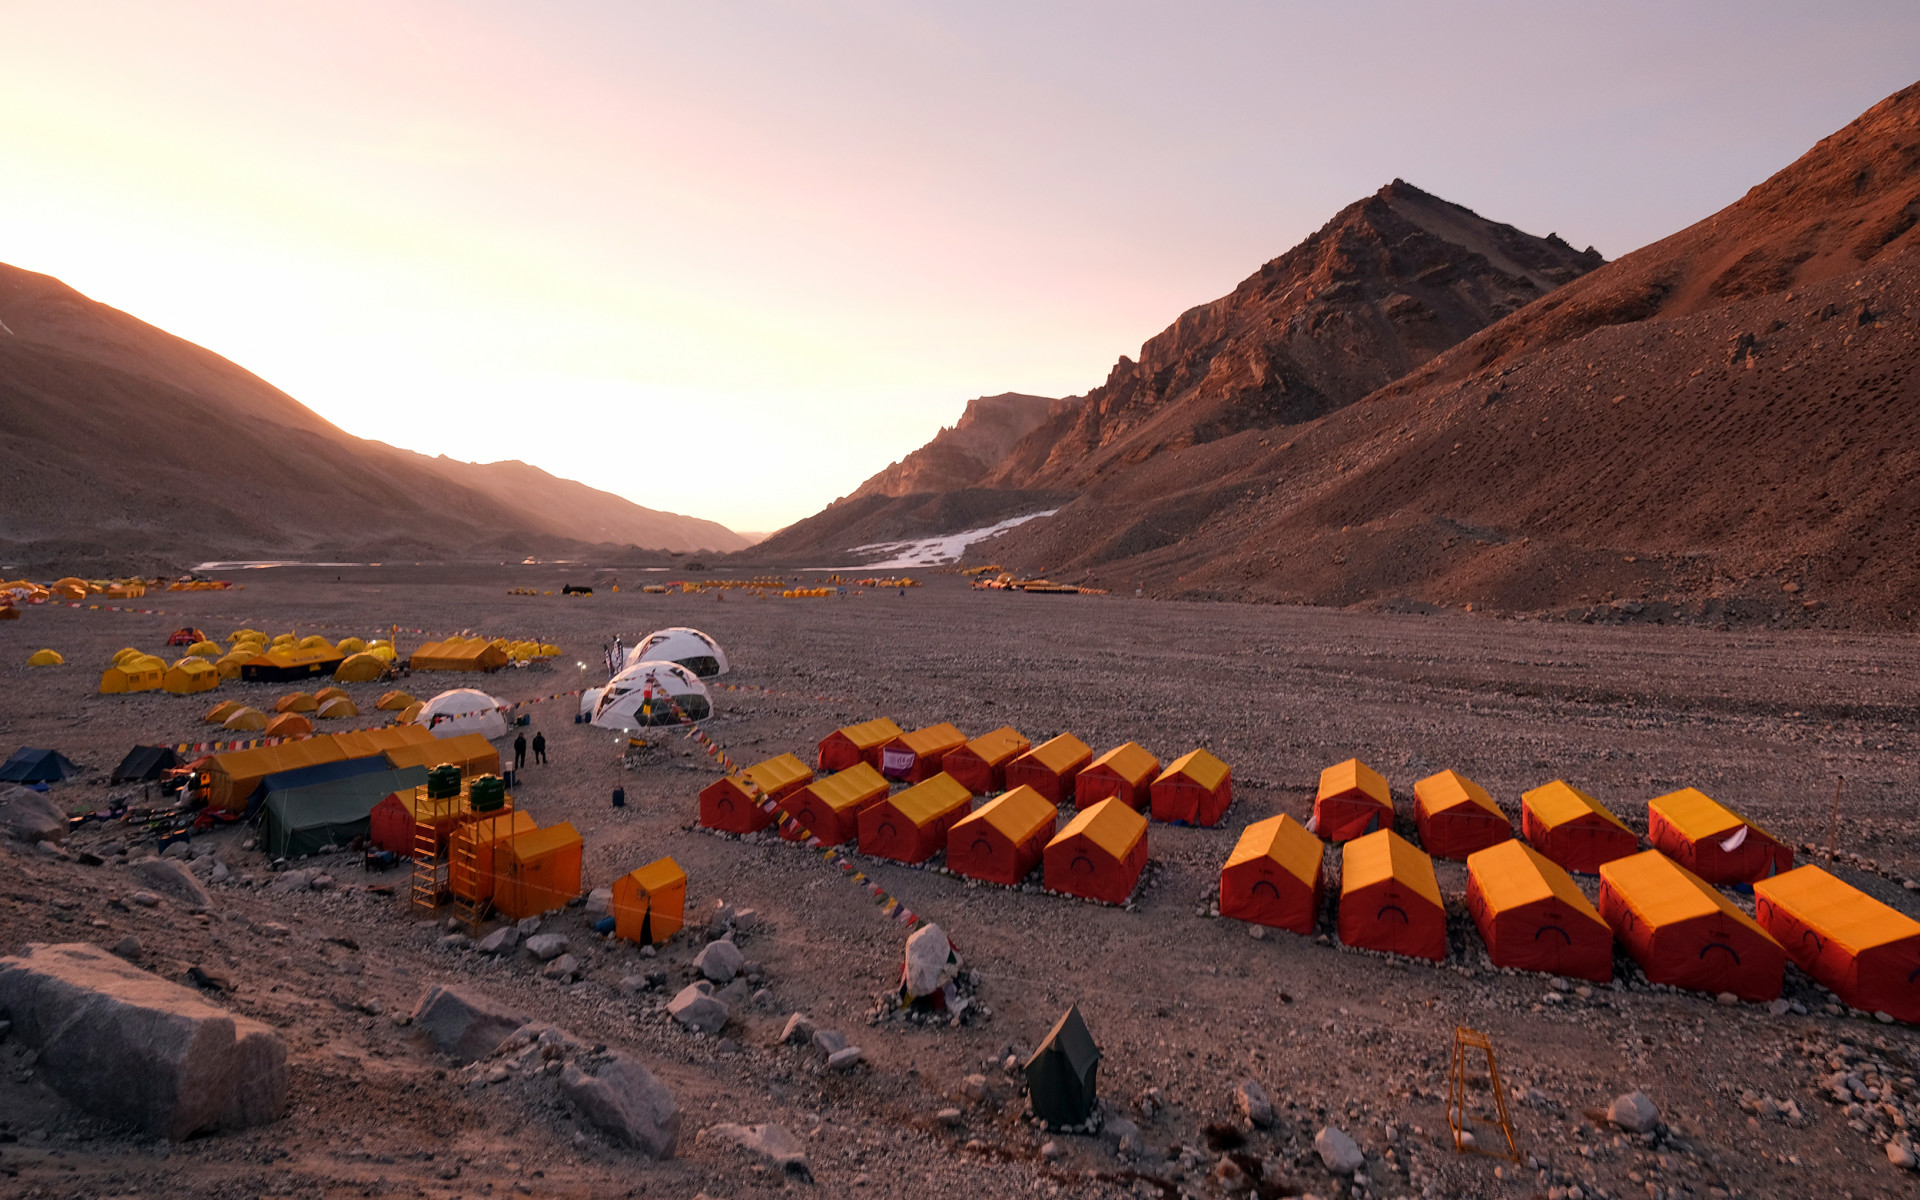 Sleeping in the base camp.